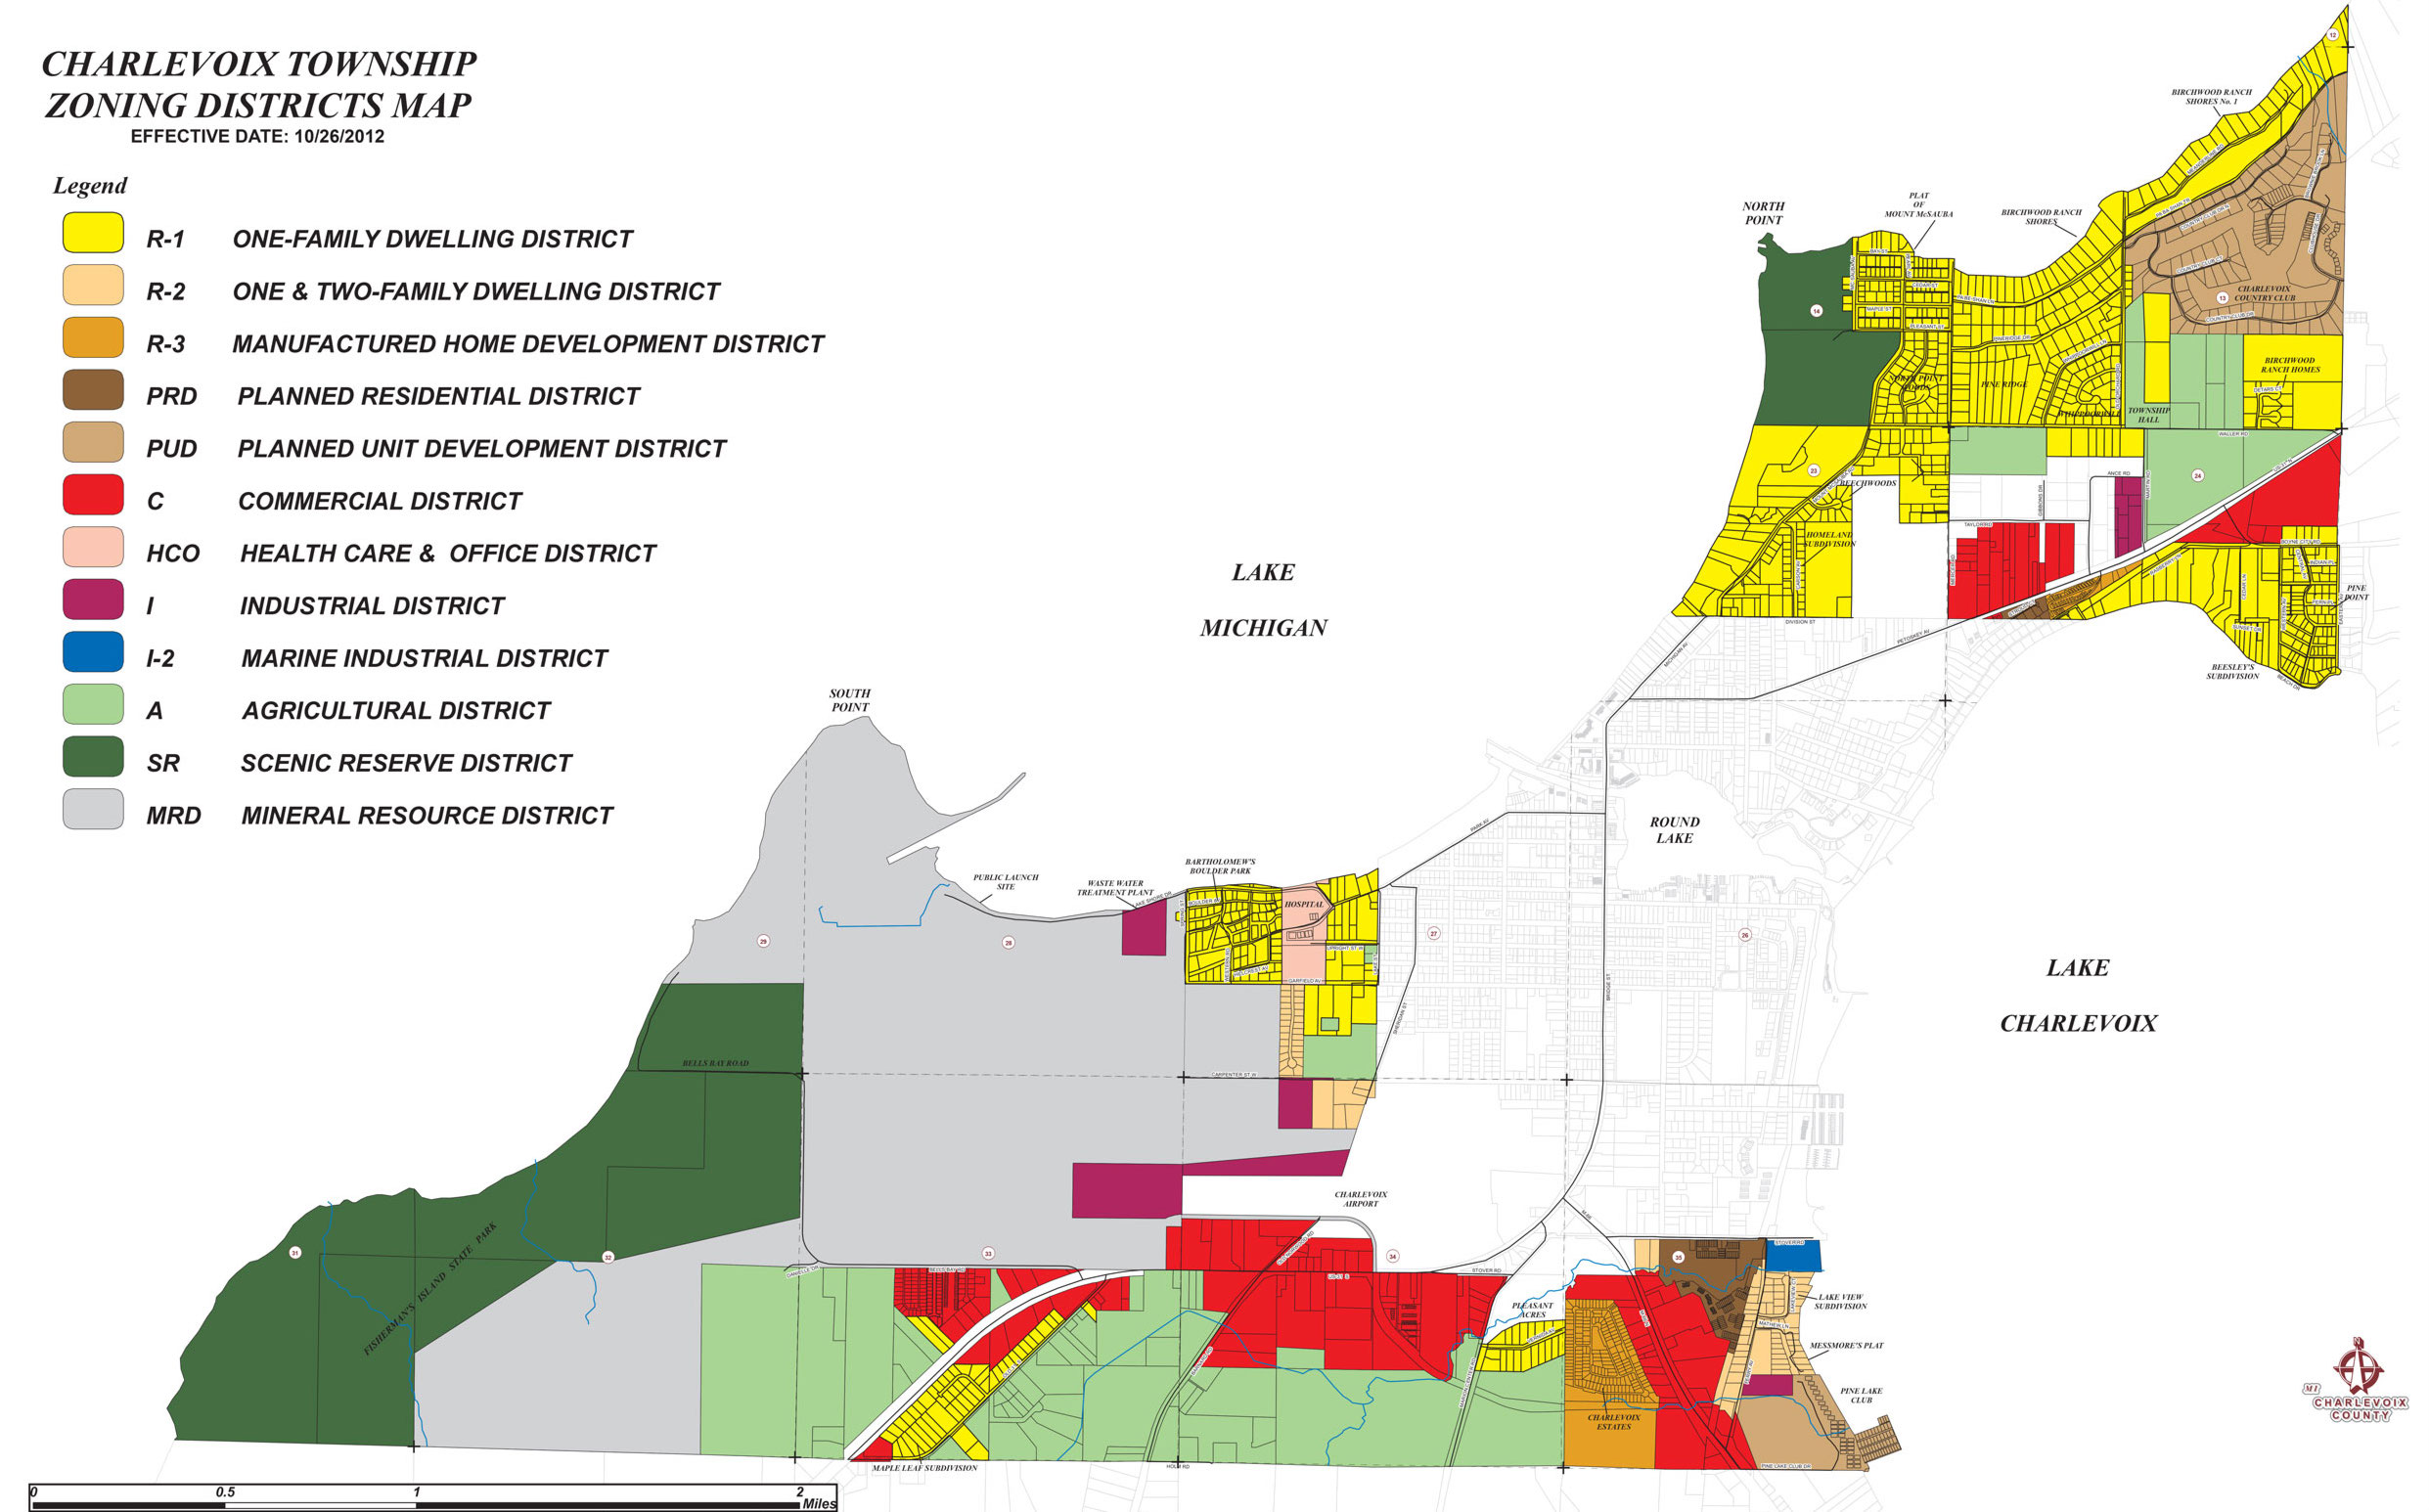 charlevoix-township-zoning-ordinances